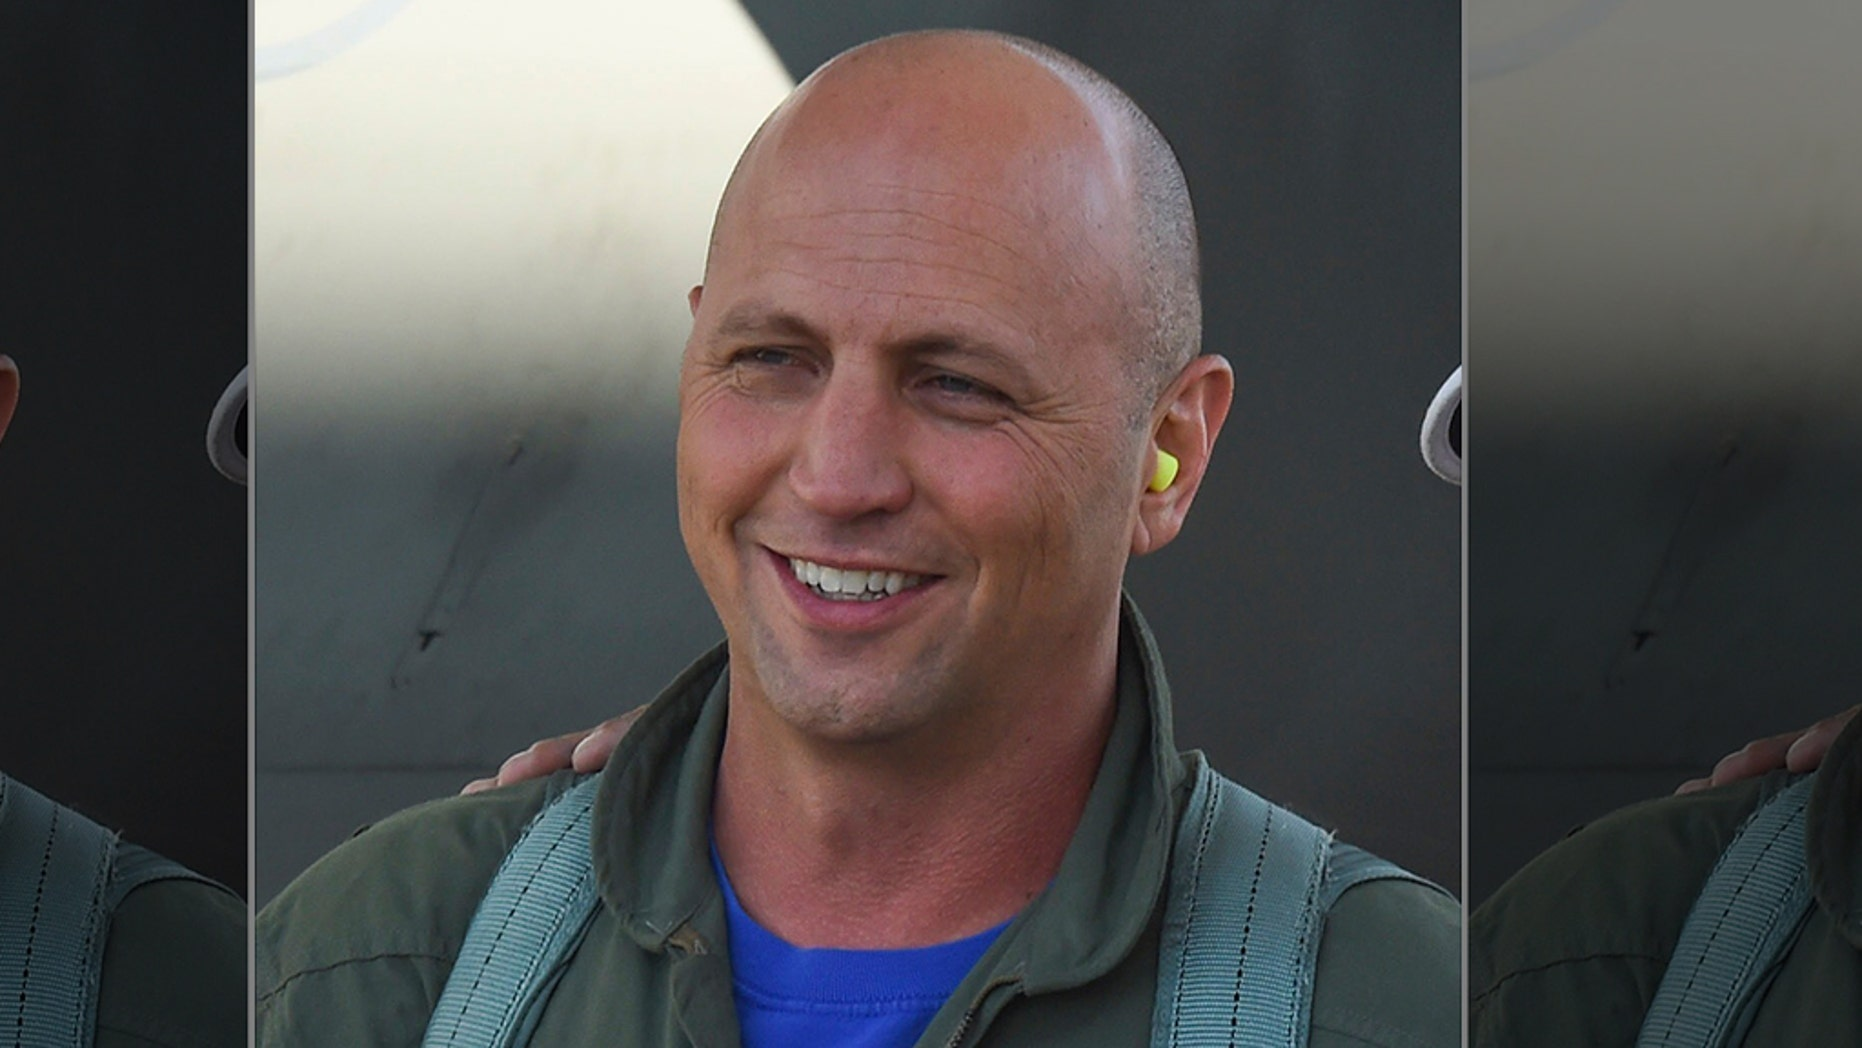 """Lt. Col. Seth """"Jethro"""" Nehring, a fighter pilot with the California Air National Guard's 194th Fighter Squadron, part of the 144th Fighter Wing based in Fresno, Calif. was killed in a crash during a routine familiarization training."""